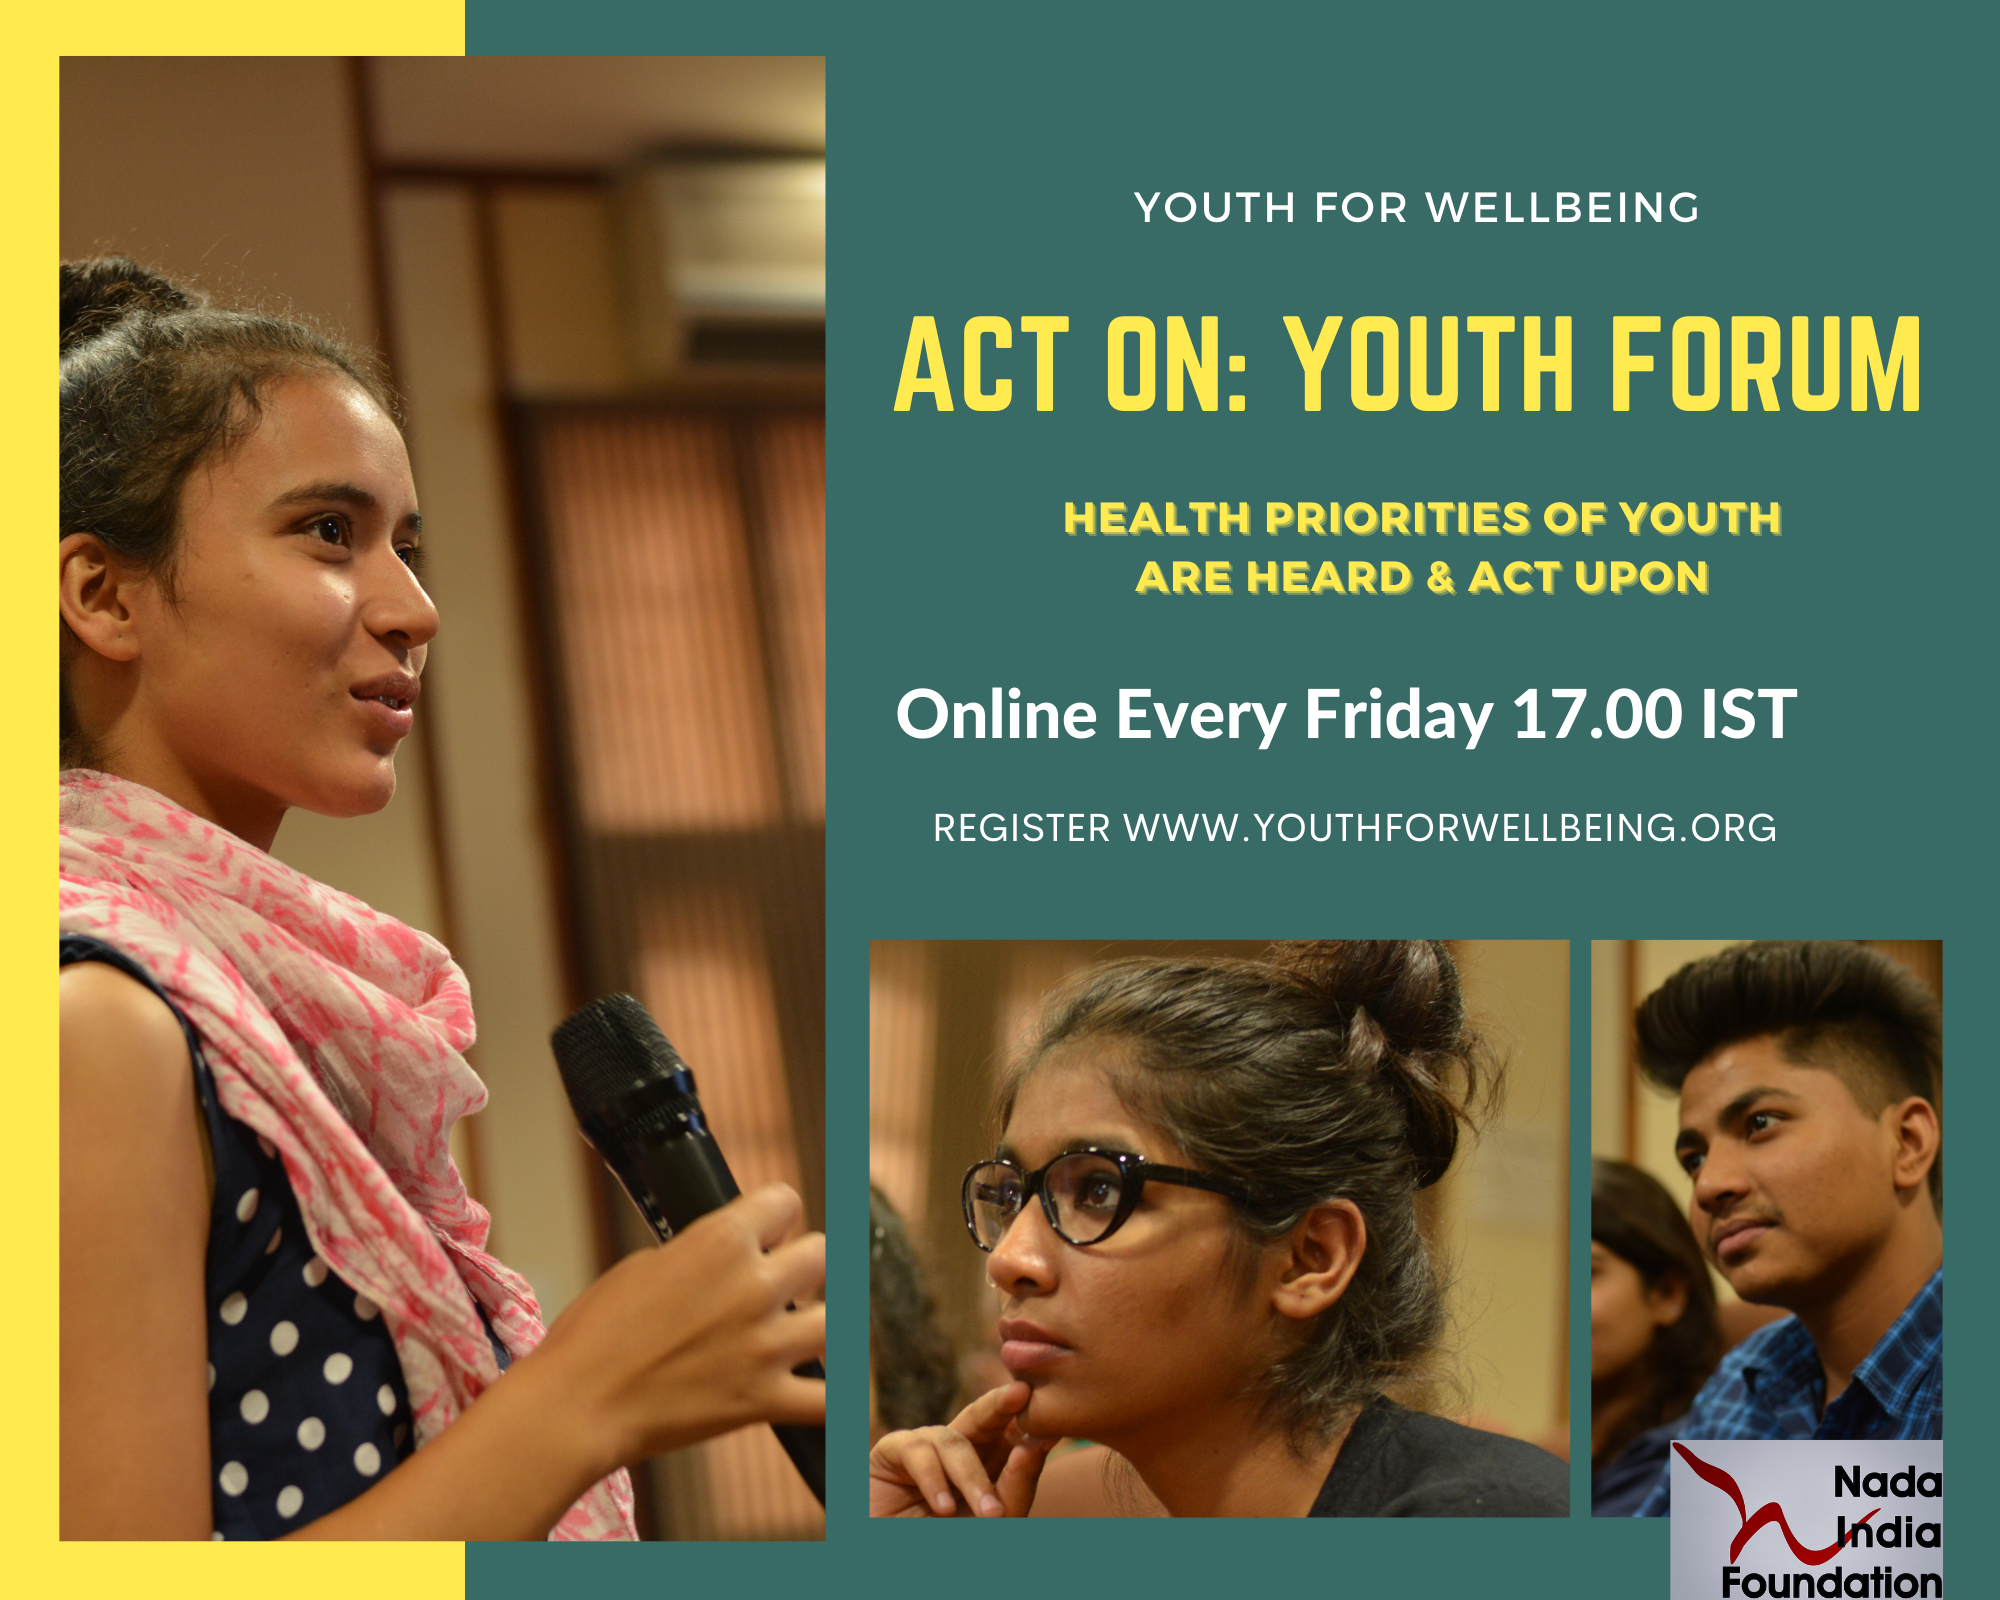 Act on Youth Forum - a platform BY, FOR & OF young people Nada India Foundation hosts an 'Act on Youth Forum' on every Friday's from 5pm-6pm. The forum is formed to discuss some pressing issues that require immediate actions/amendments by the government so as to protect the health and interests of people especially the young.   Simply register for a date according to your availability and topic of interest and we will share all reading materials that will help you get a back ground of the problem and participate at the forum. This is an opportunity for you to voice your opinion for health rights and better well-being of all in your community and for fellow youth like you. So be sure to make use of this platform and come prepared.  If you wish to raise a topic of your own and discuss it at the forum send a synopsis of the topic to indianyouthfirst@gmail.com and we will be happy to host you at our forum.   * Required